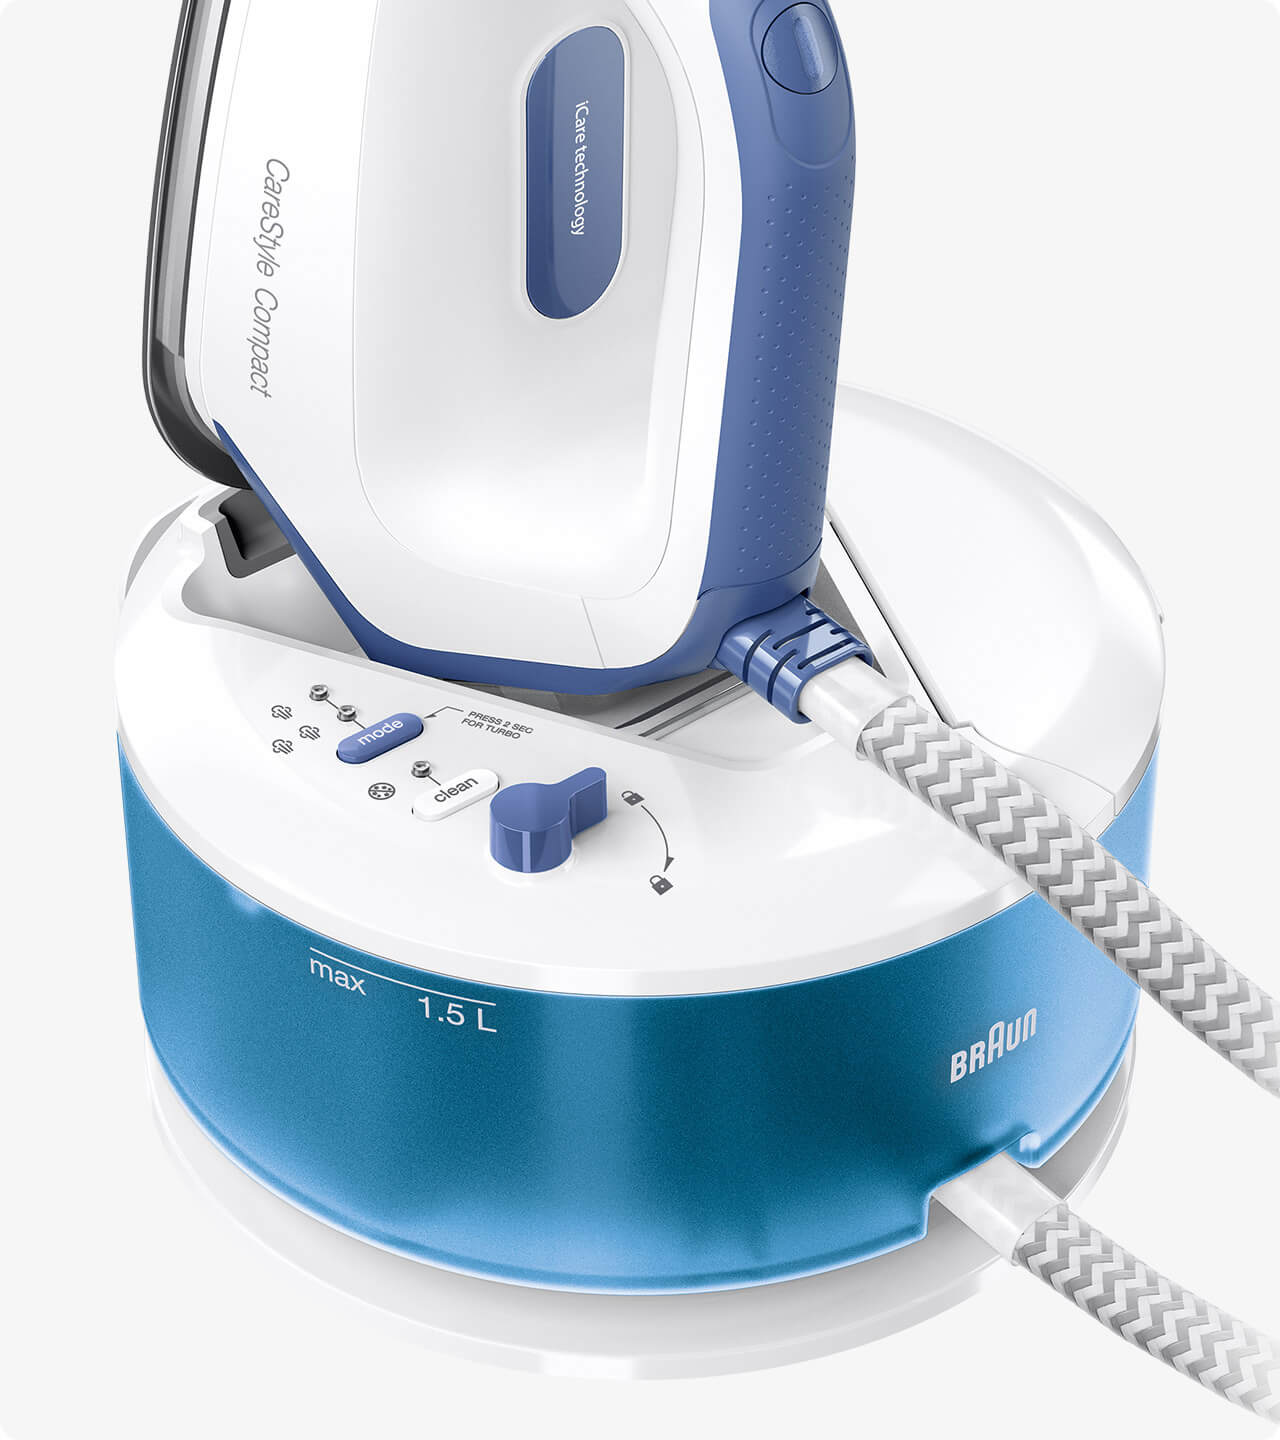 Braun CareStyle Compact – Save Space